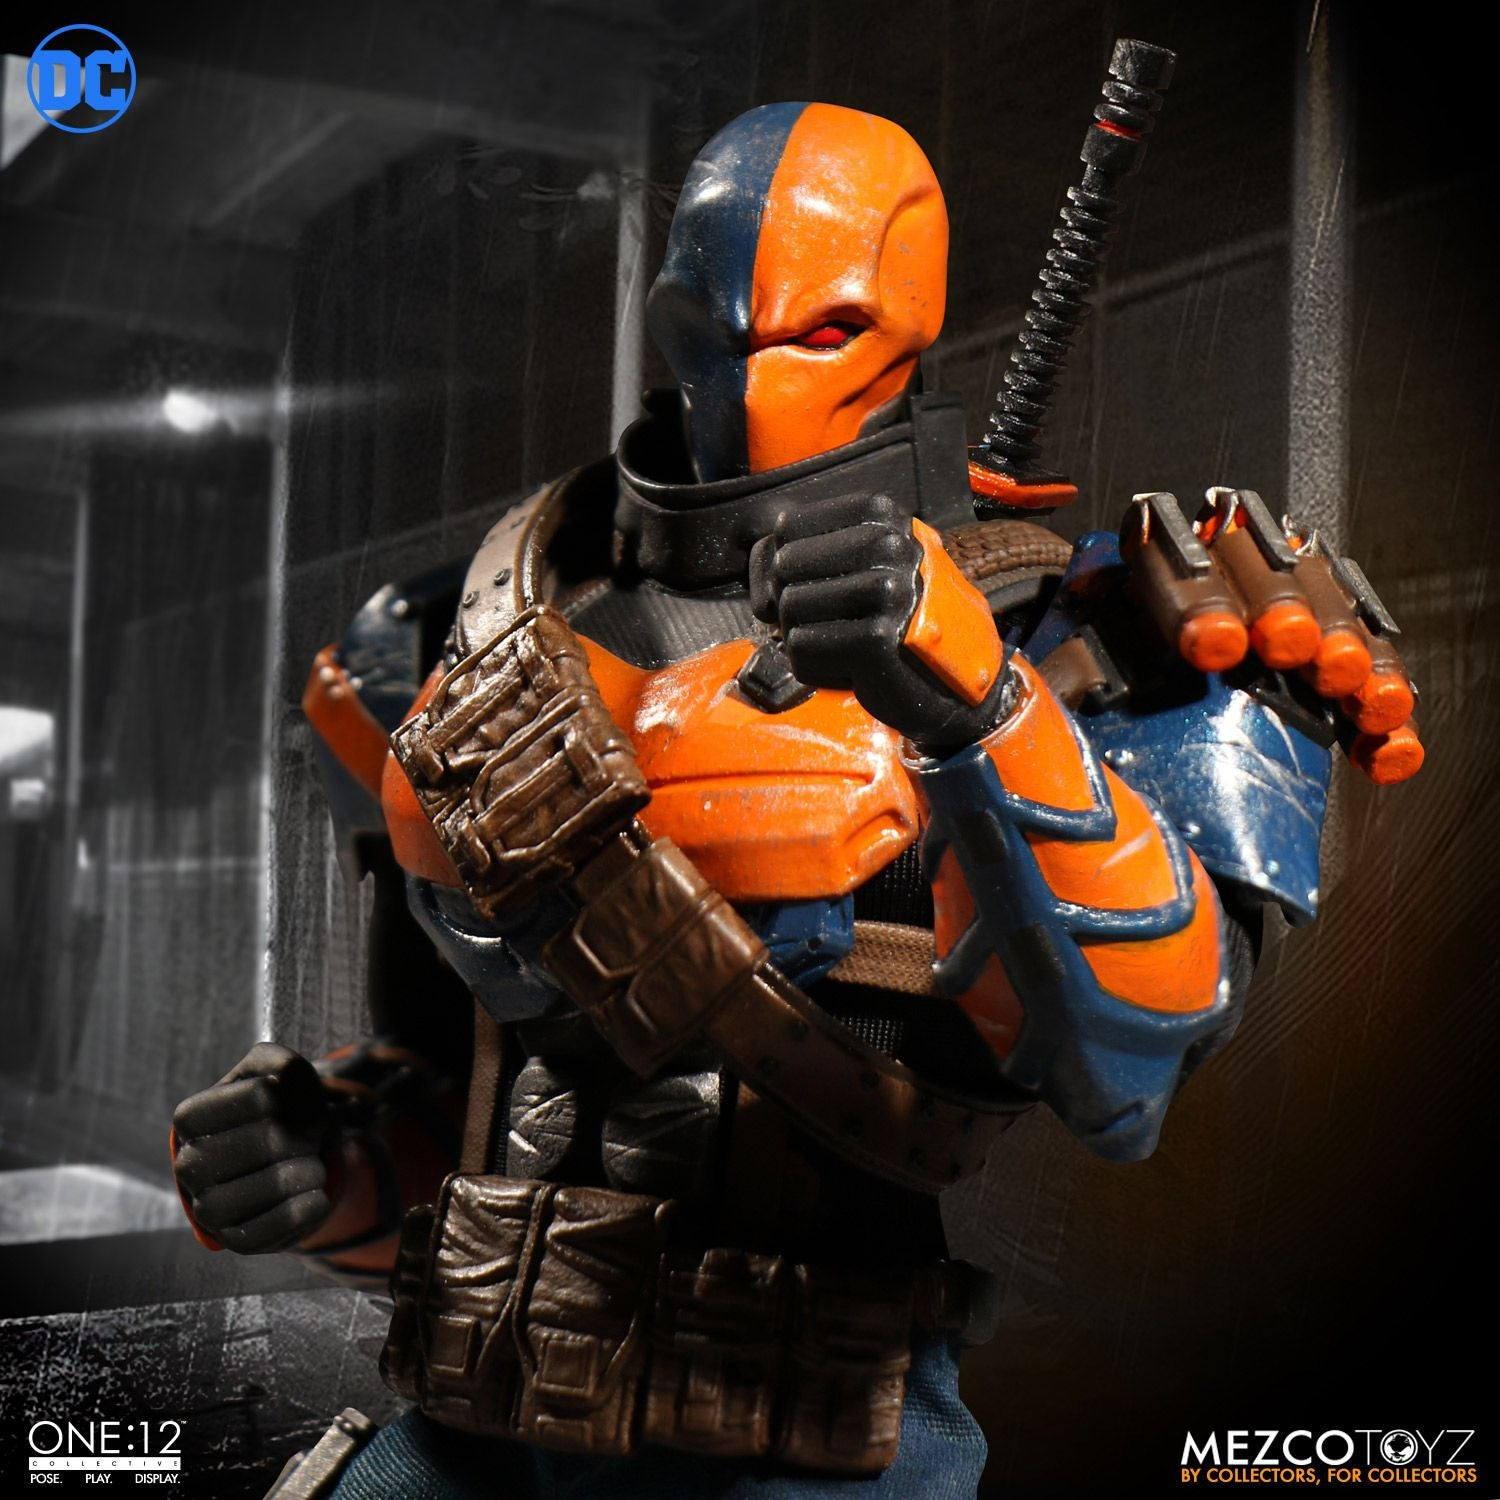 Mezco - One:12 Collective - Deathstroke - Marvelous Toys - 3